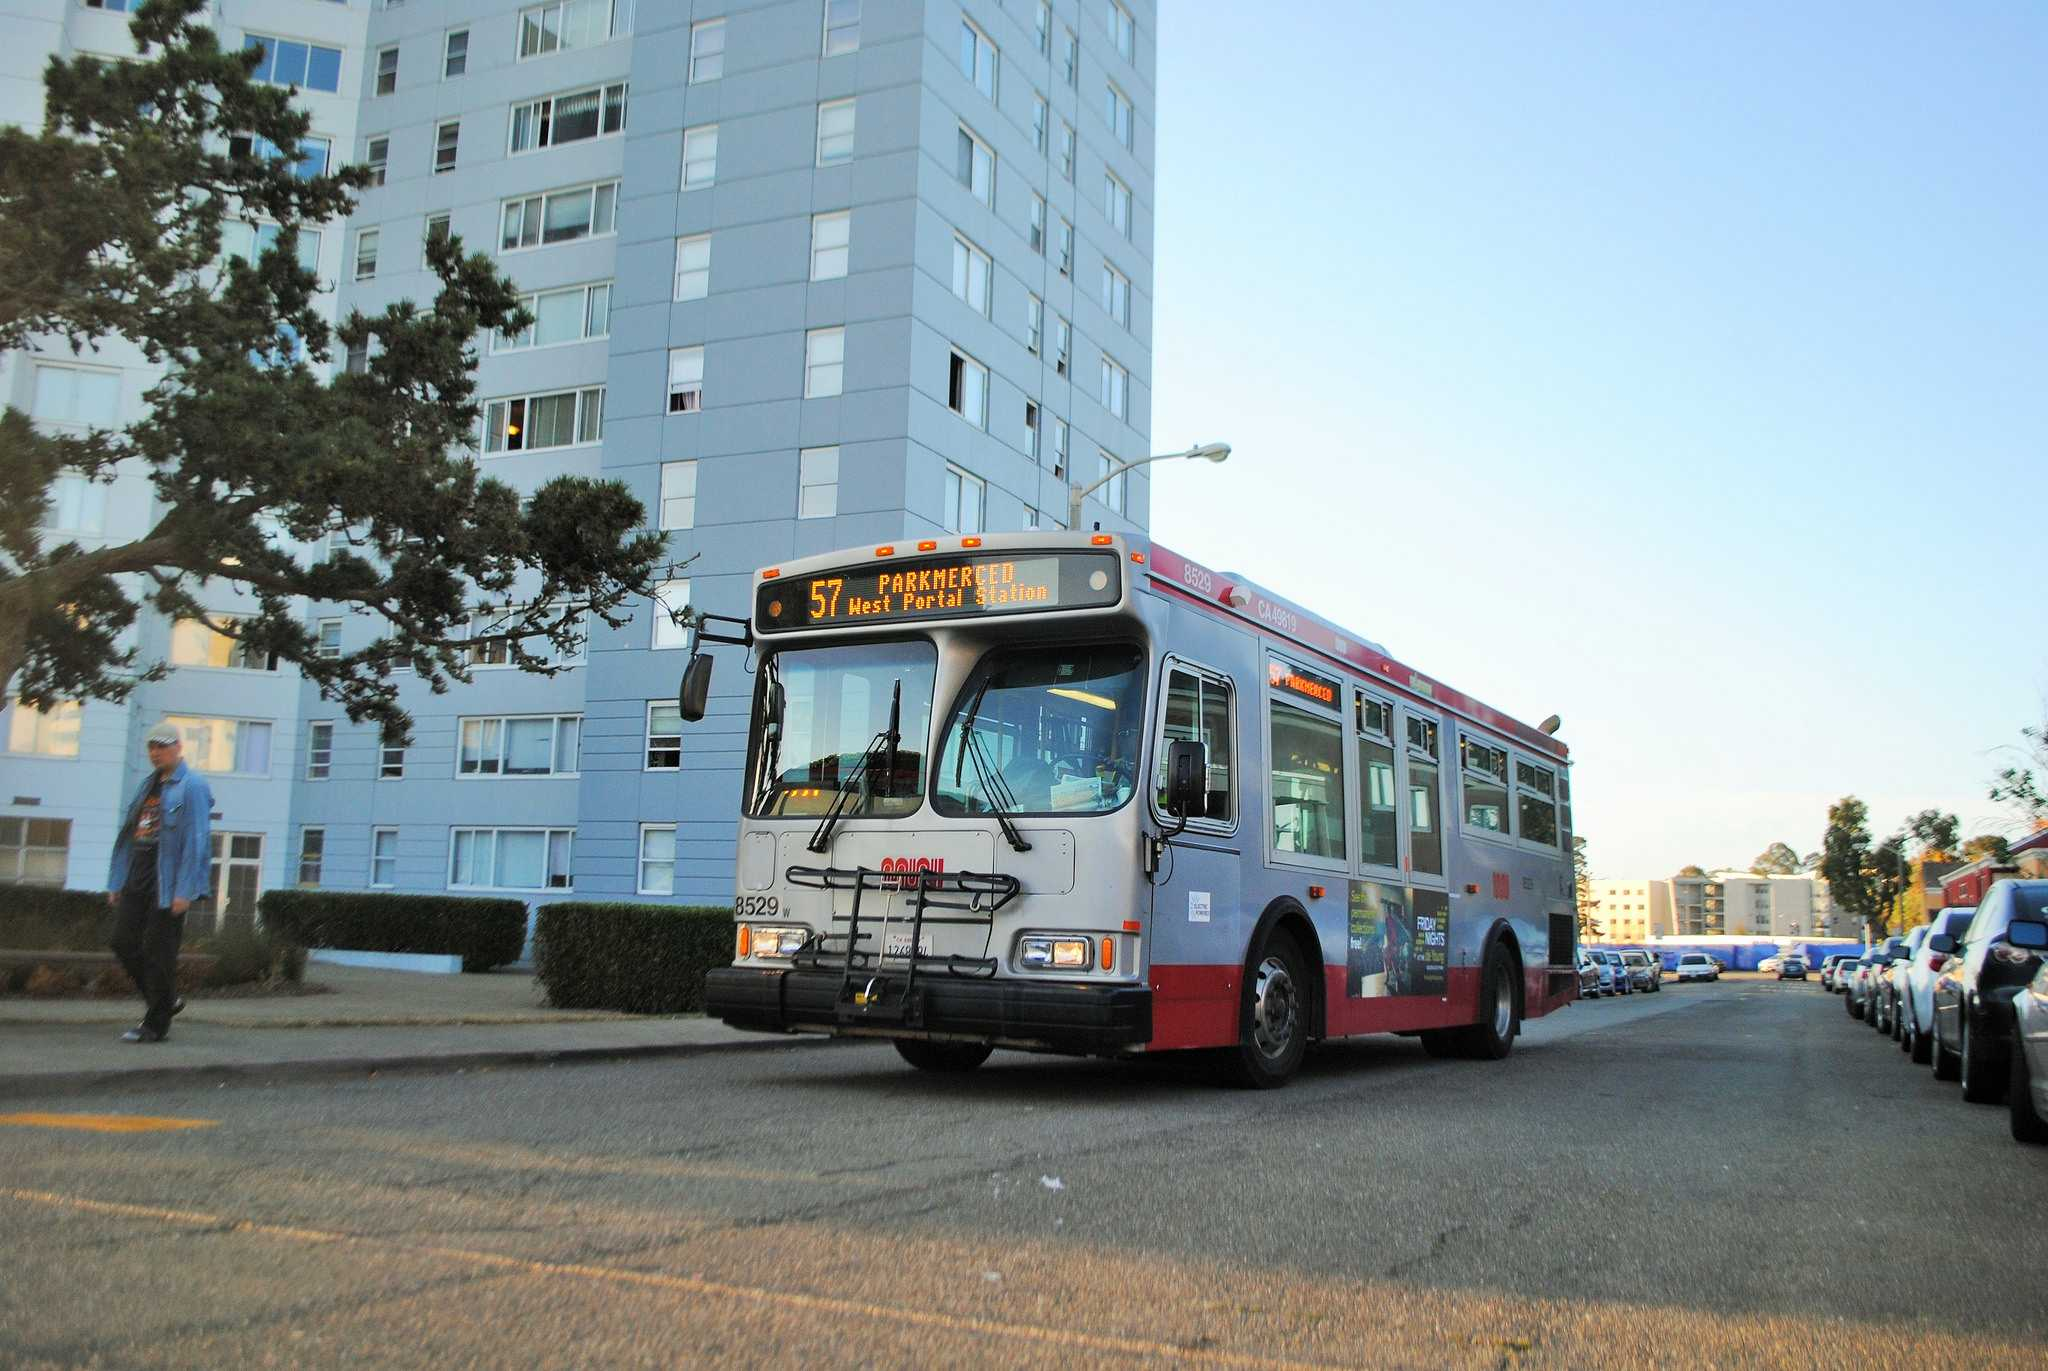 Remapping planned for Muni routes